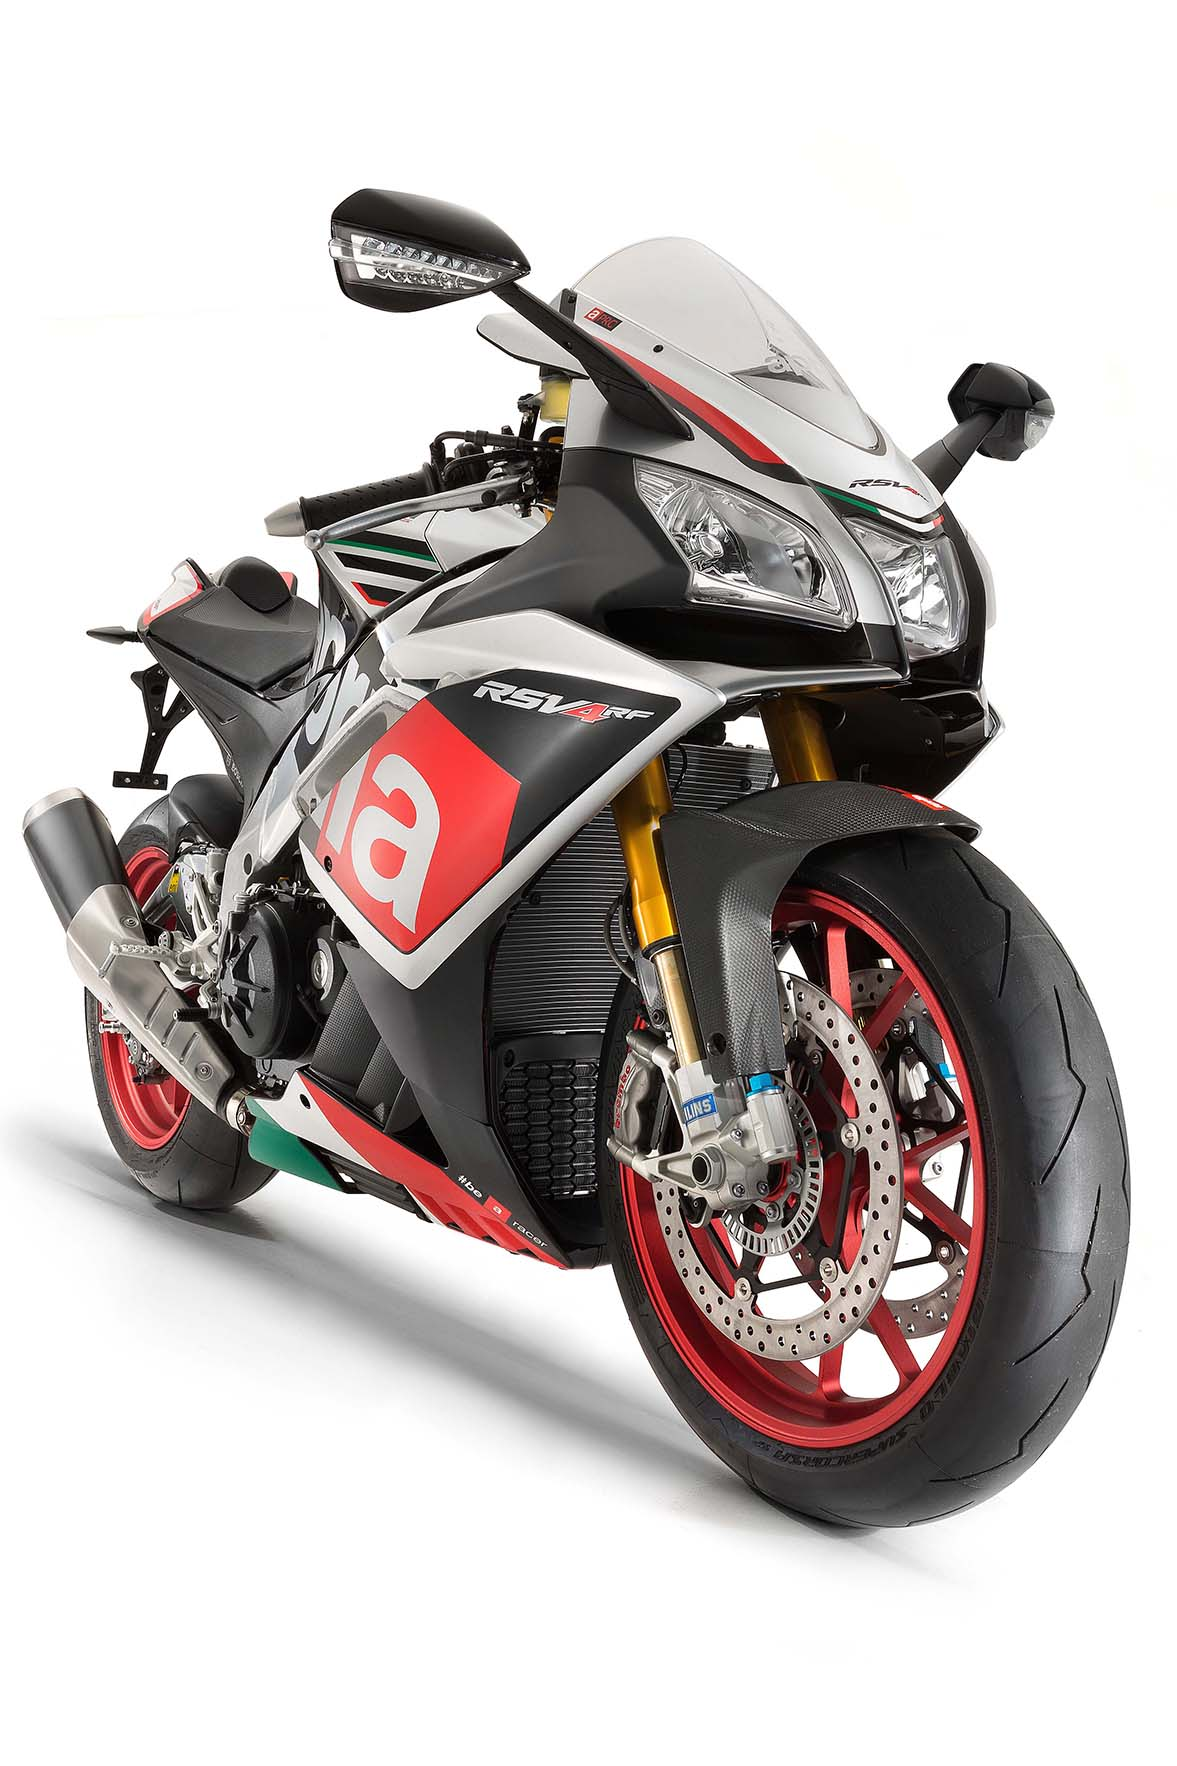 aprilia updates the rsv4 and introduces  | visordown